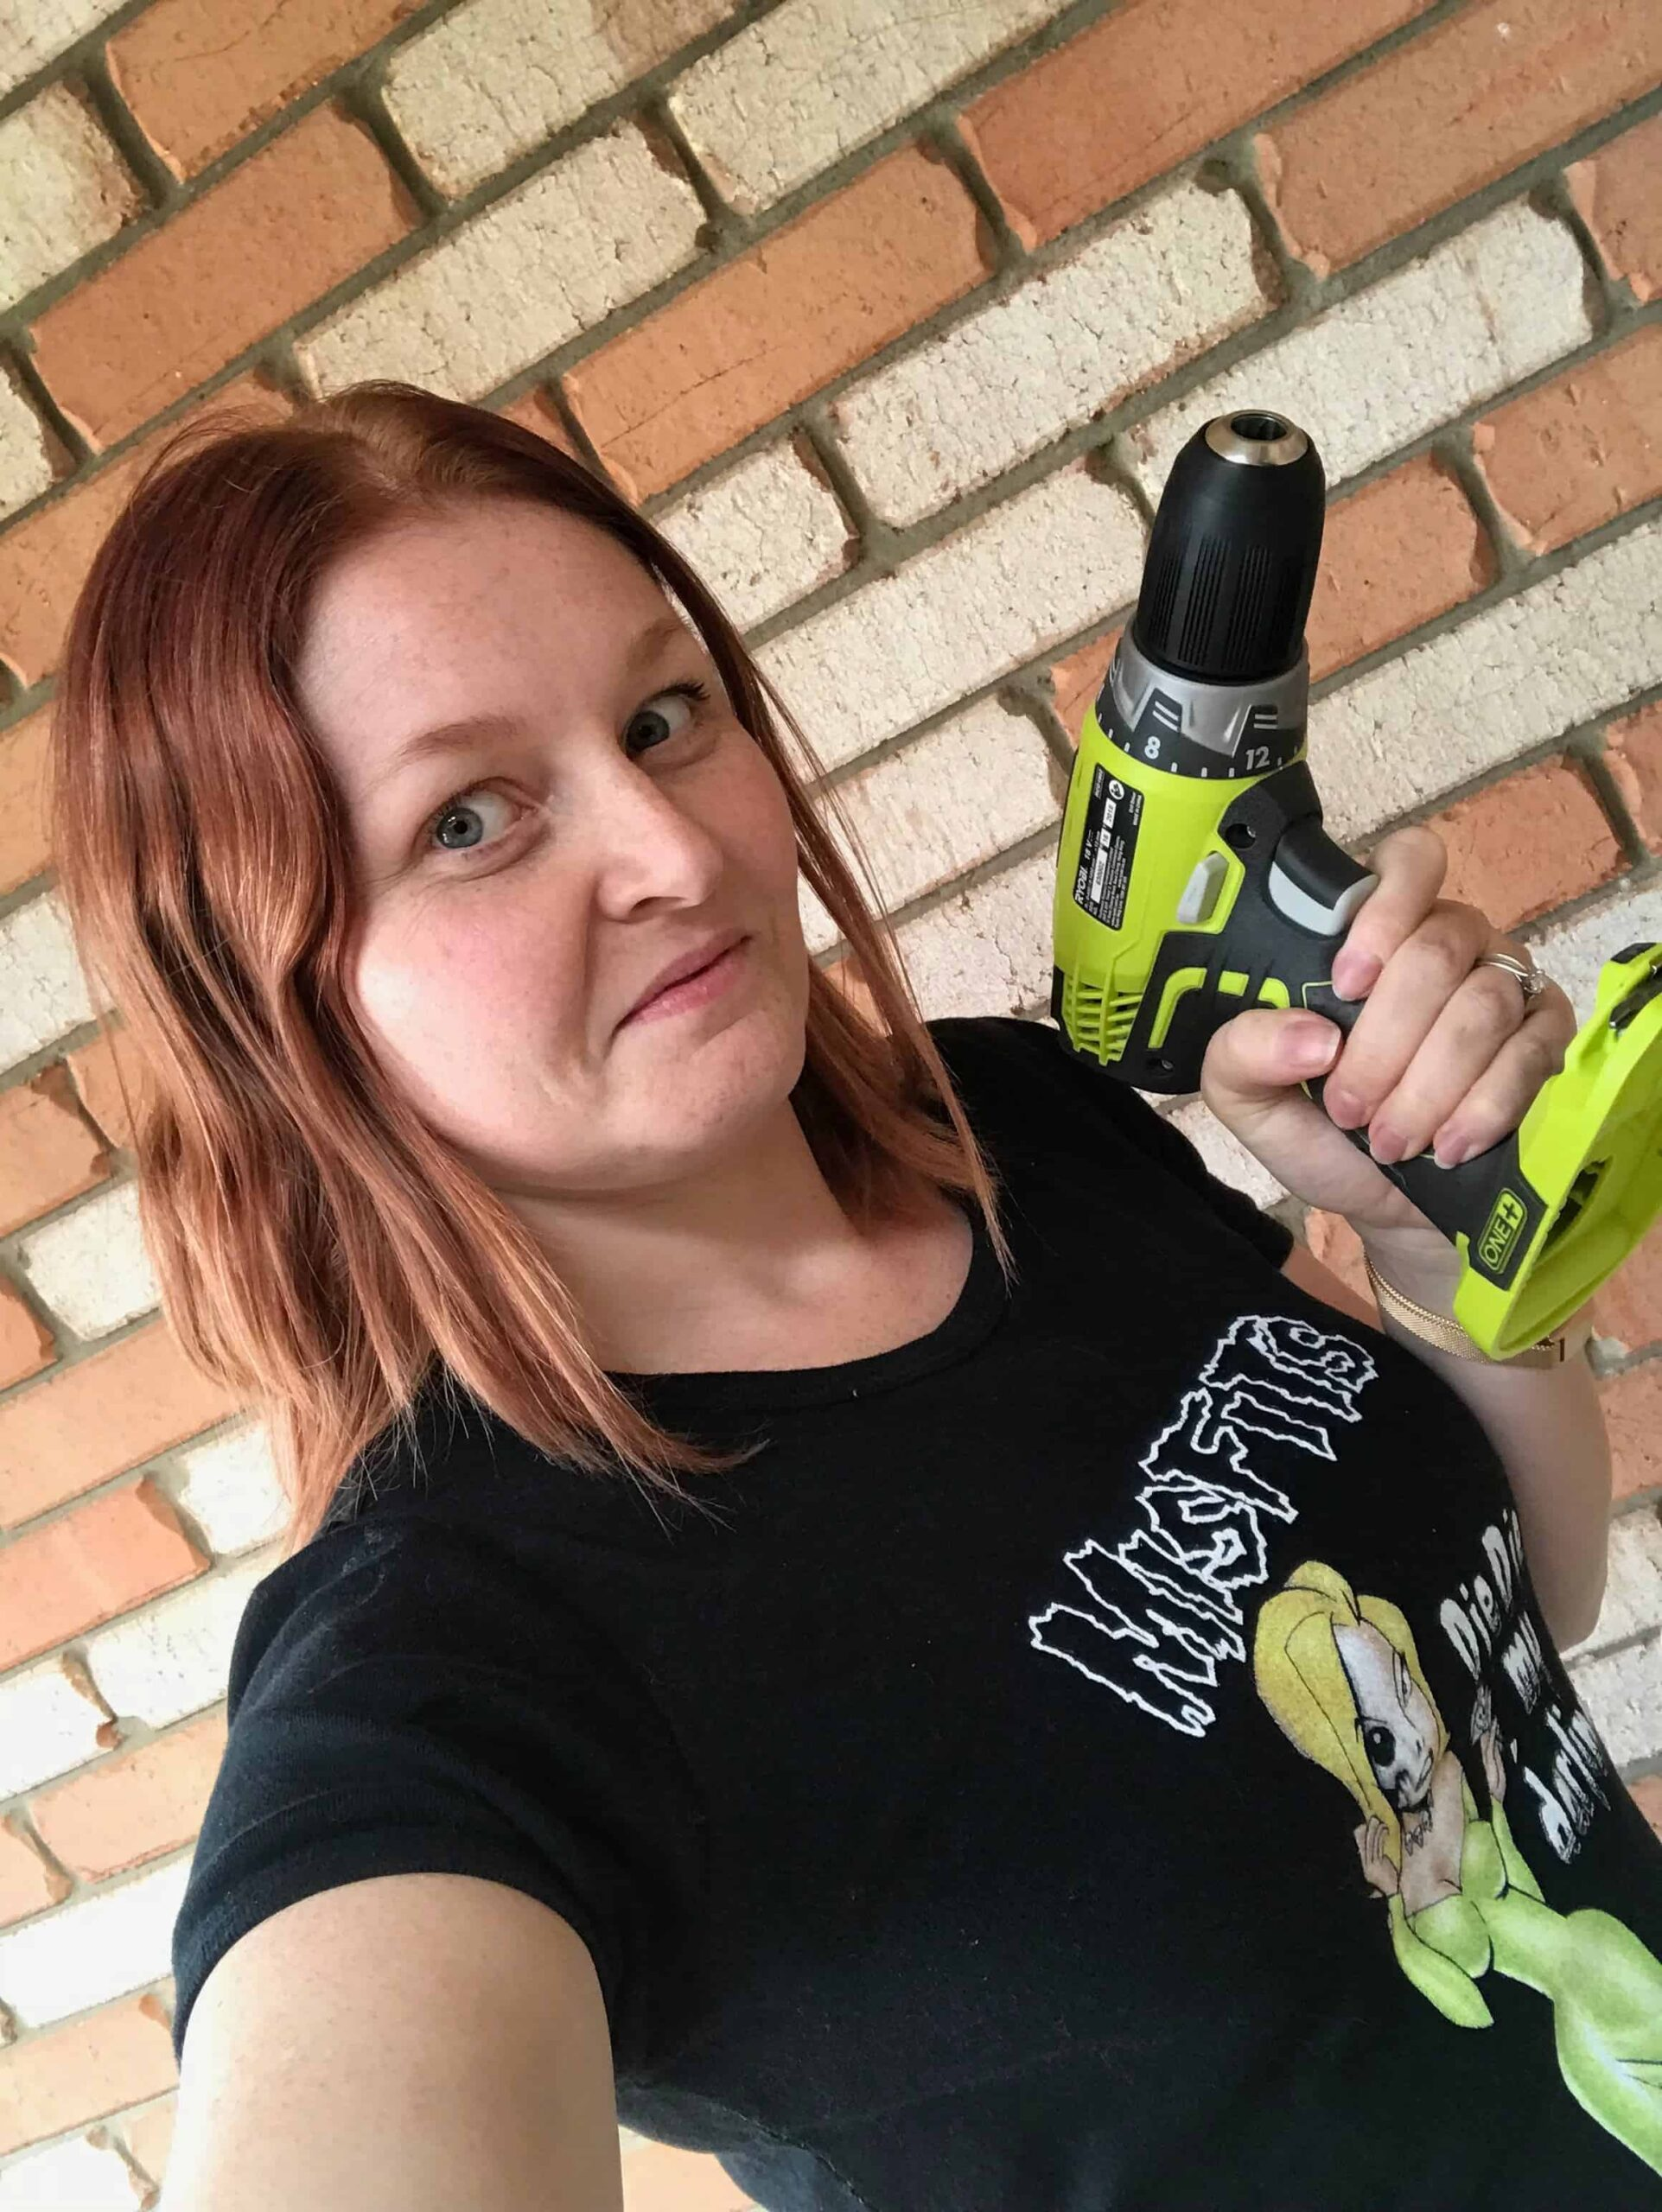 Spring yard maintenance with Ryobi